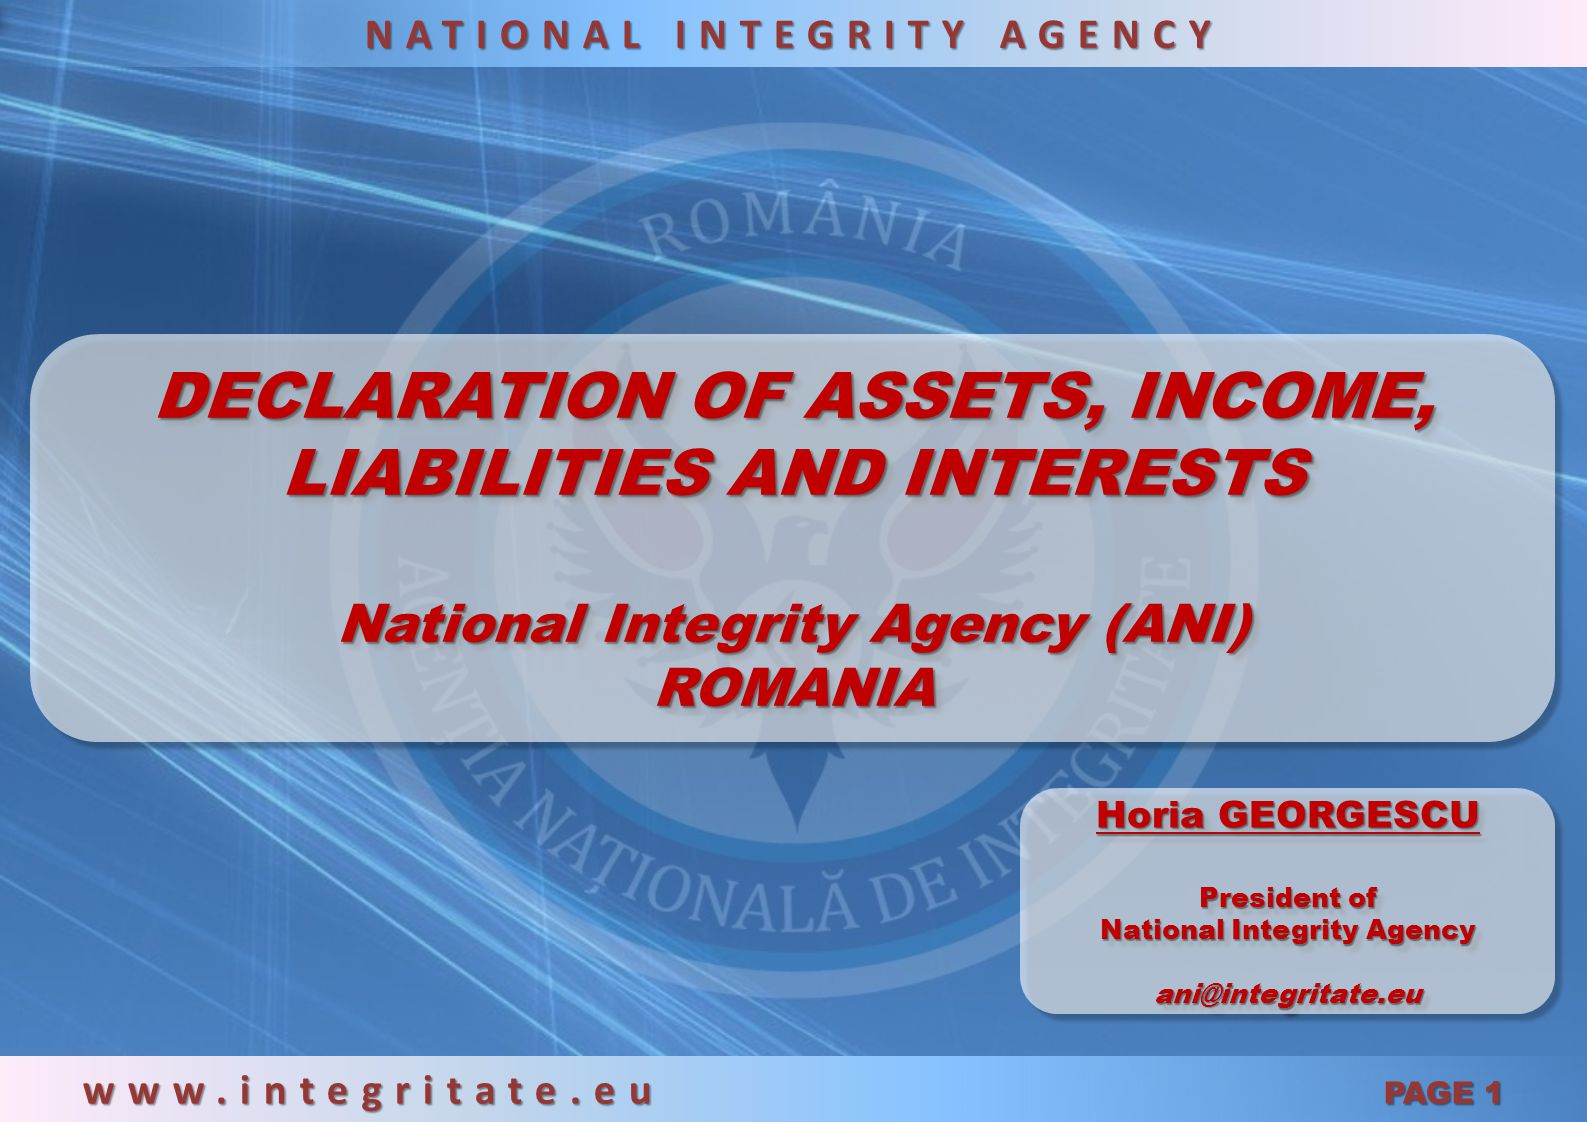 DECLARATION OF ASSETS, INCOME, LIABILITIES AND INTERESTS